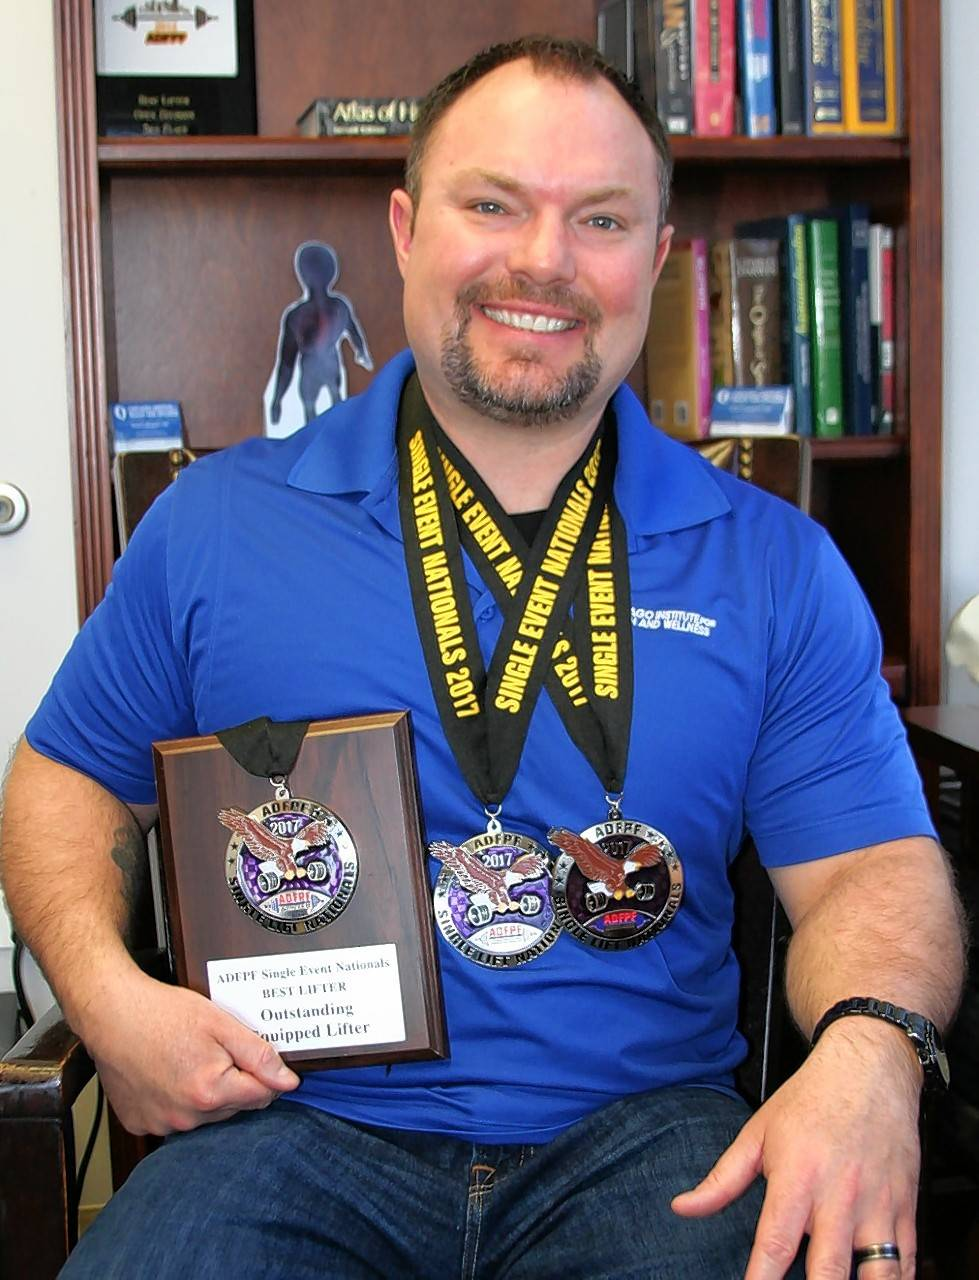 Thomas Mitchell, a lifetime weightlifter and clinic director at Chicago Institute for Health and Wellness in Elgin, recently broke both the American and world powerlifting records in the 198-pound weight class, equipped bench press division at the recent American Drug-Free Powerlifting Federation Competition.